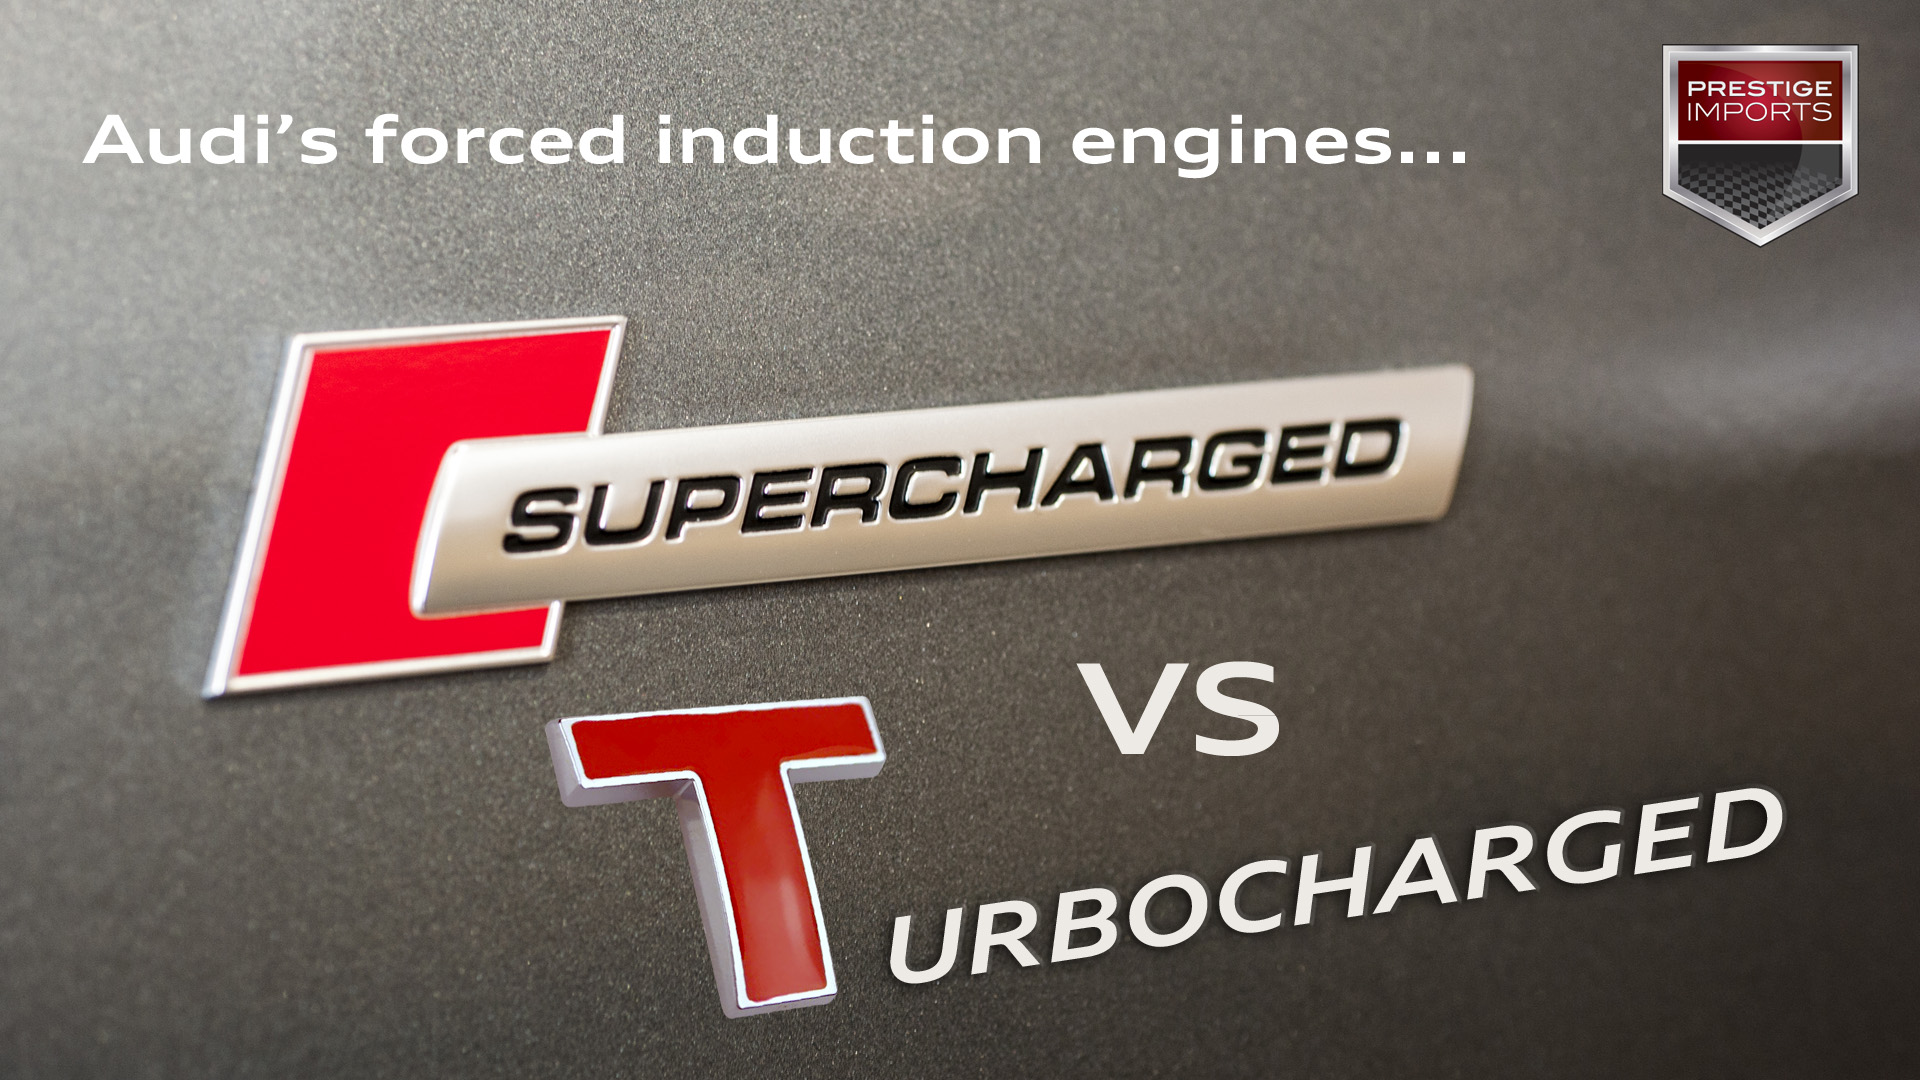 What is the difference between a turbocharger and a supercharger?